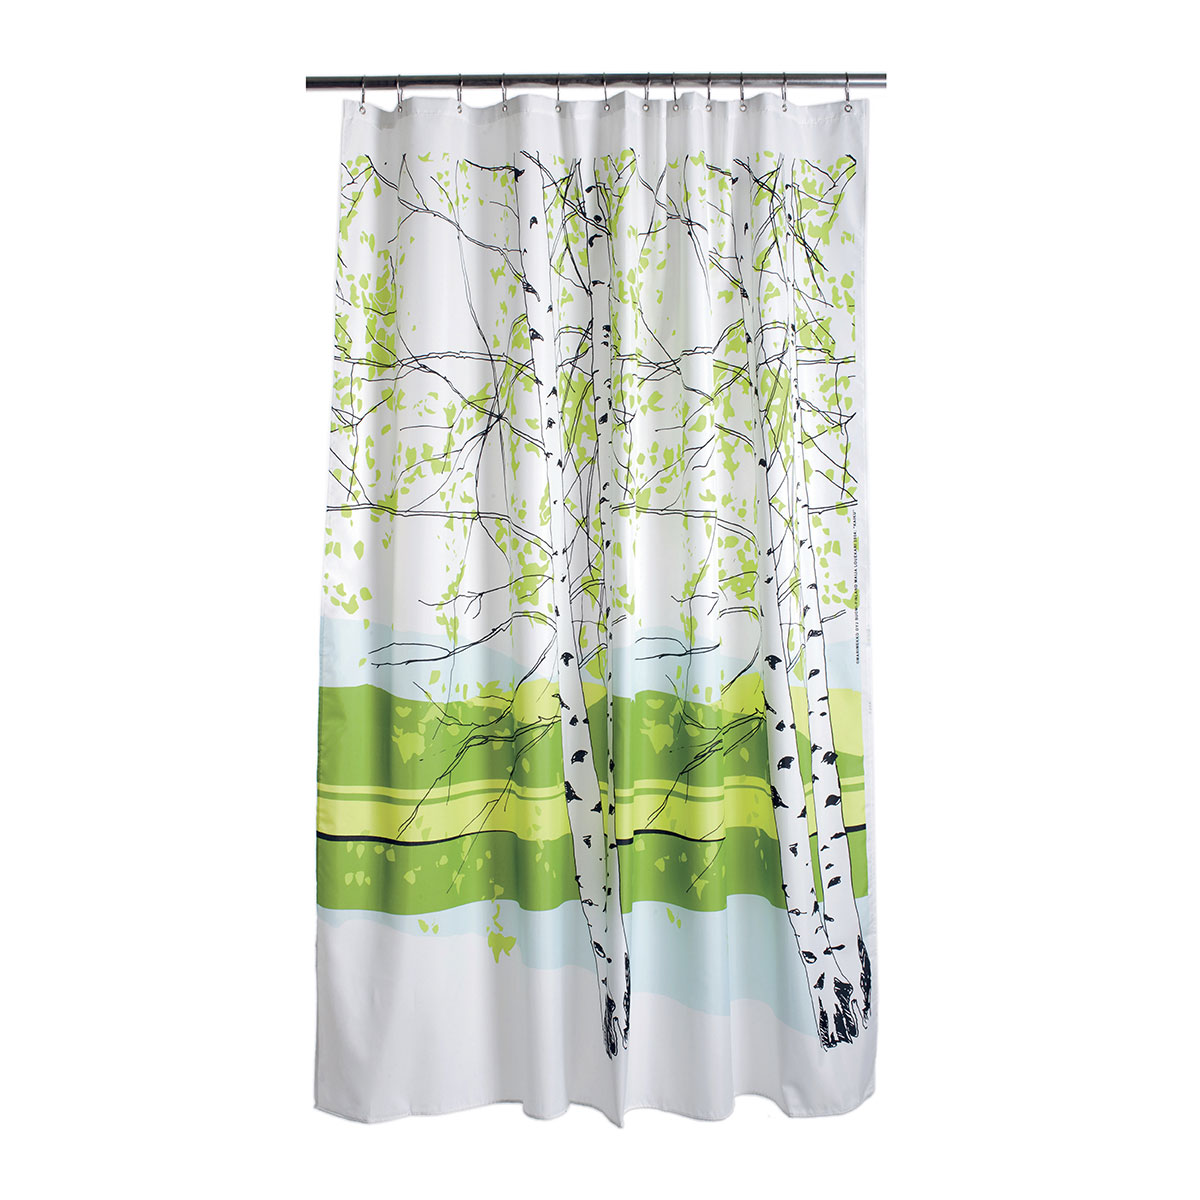 and coffee marimekko accessories thevol shower curtains liner cu for jcpenney plaid amusing bathroom table tables